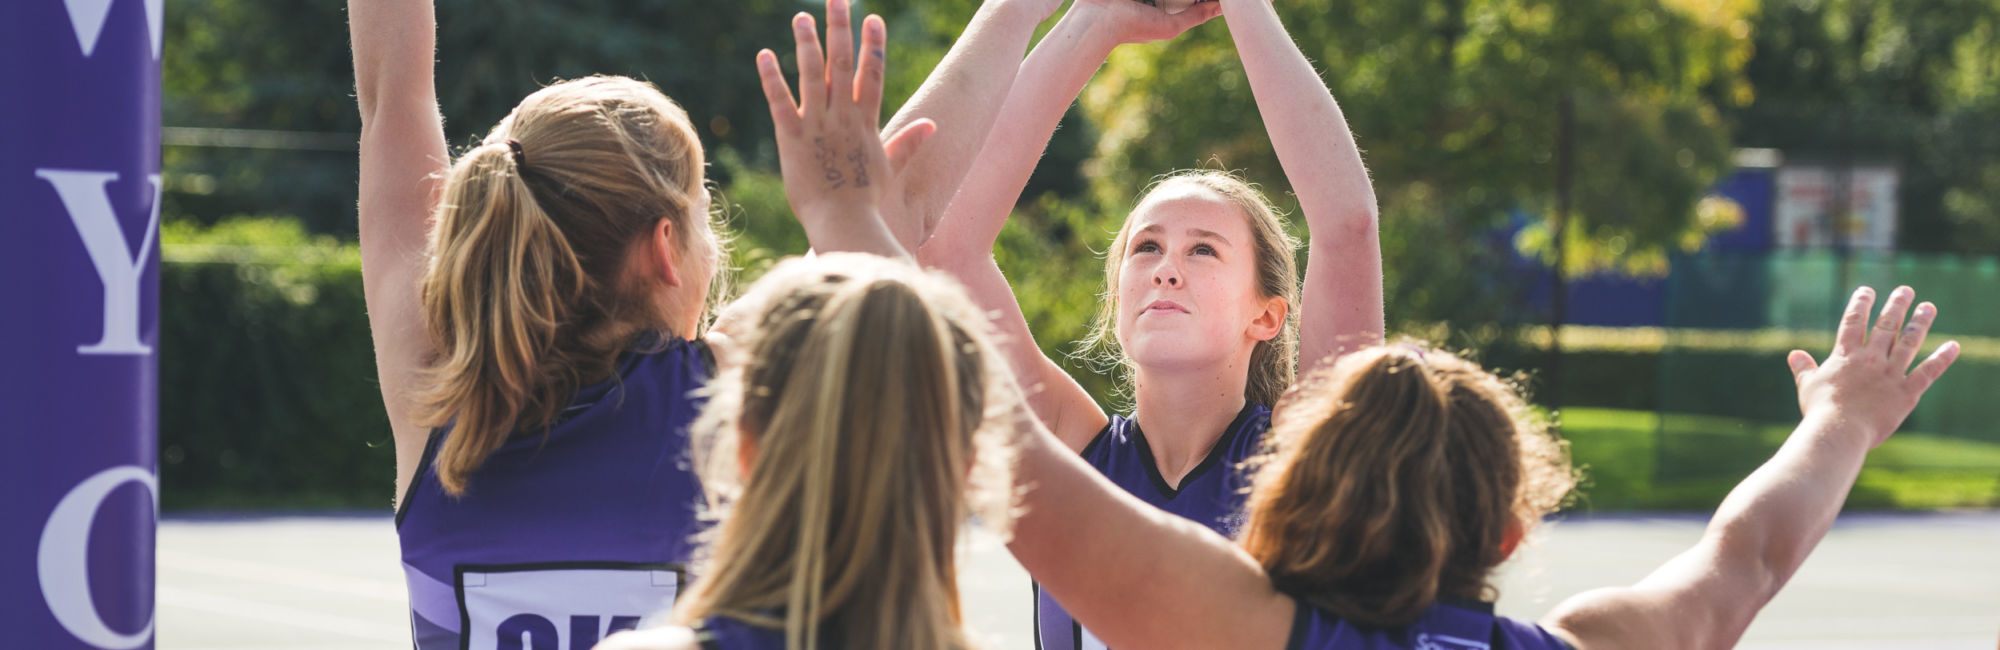 wycliffe netball team playing